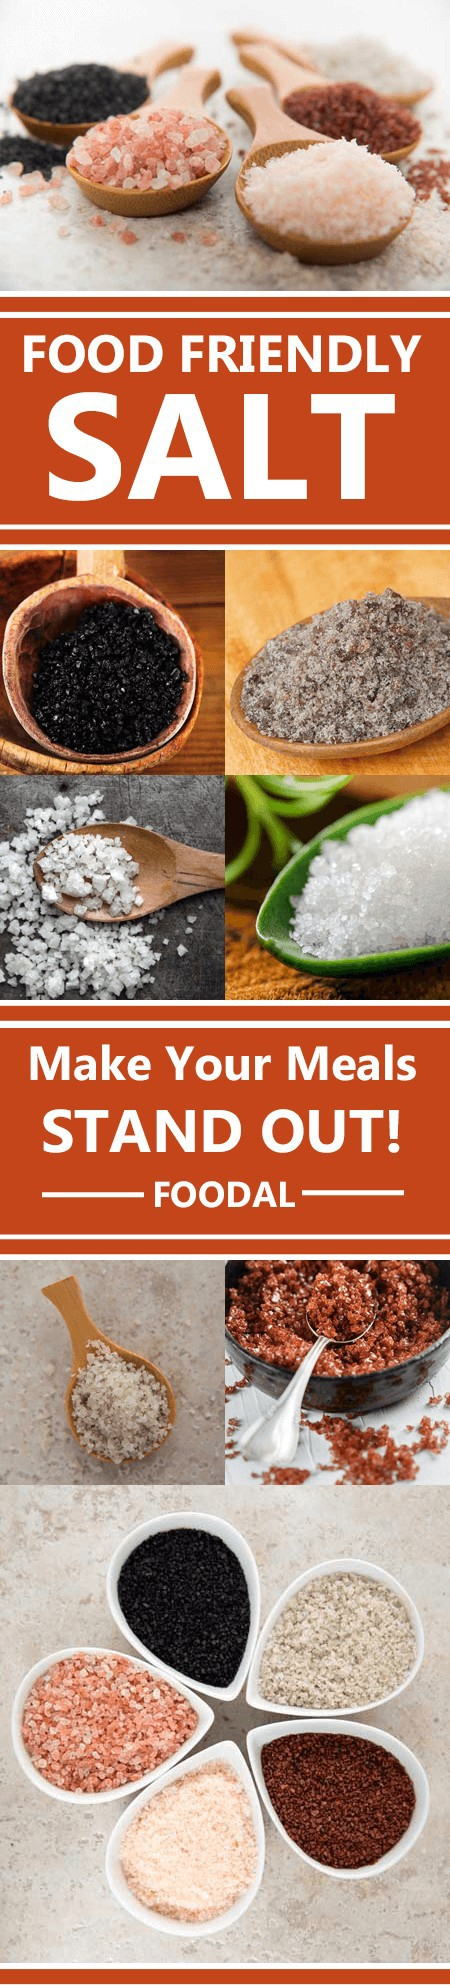 Once a precious commodity use as source of wealth, salt has dwindled into a basic blah white staple. However, most people don't realize that it is available in a huge array of flavors and colors, most of which deliver a wide range of trace minerals not found in your common table salts. Read more now at https://foodal.com/knowledge/paleo/pass-the-salt-please/